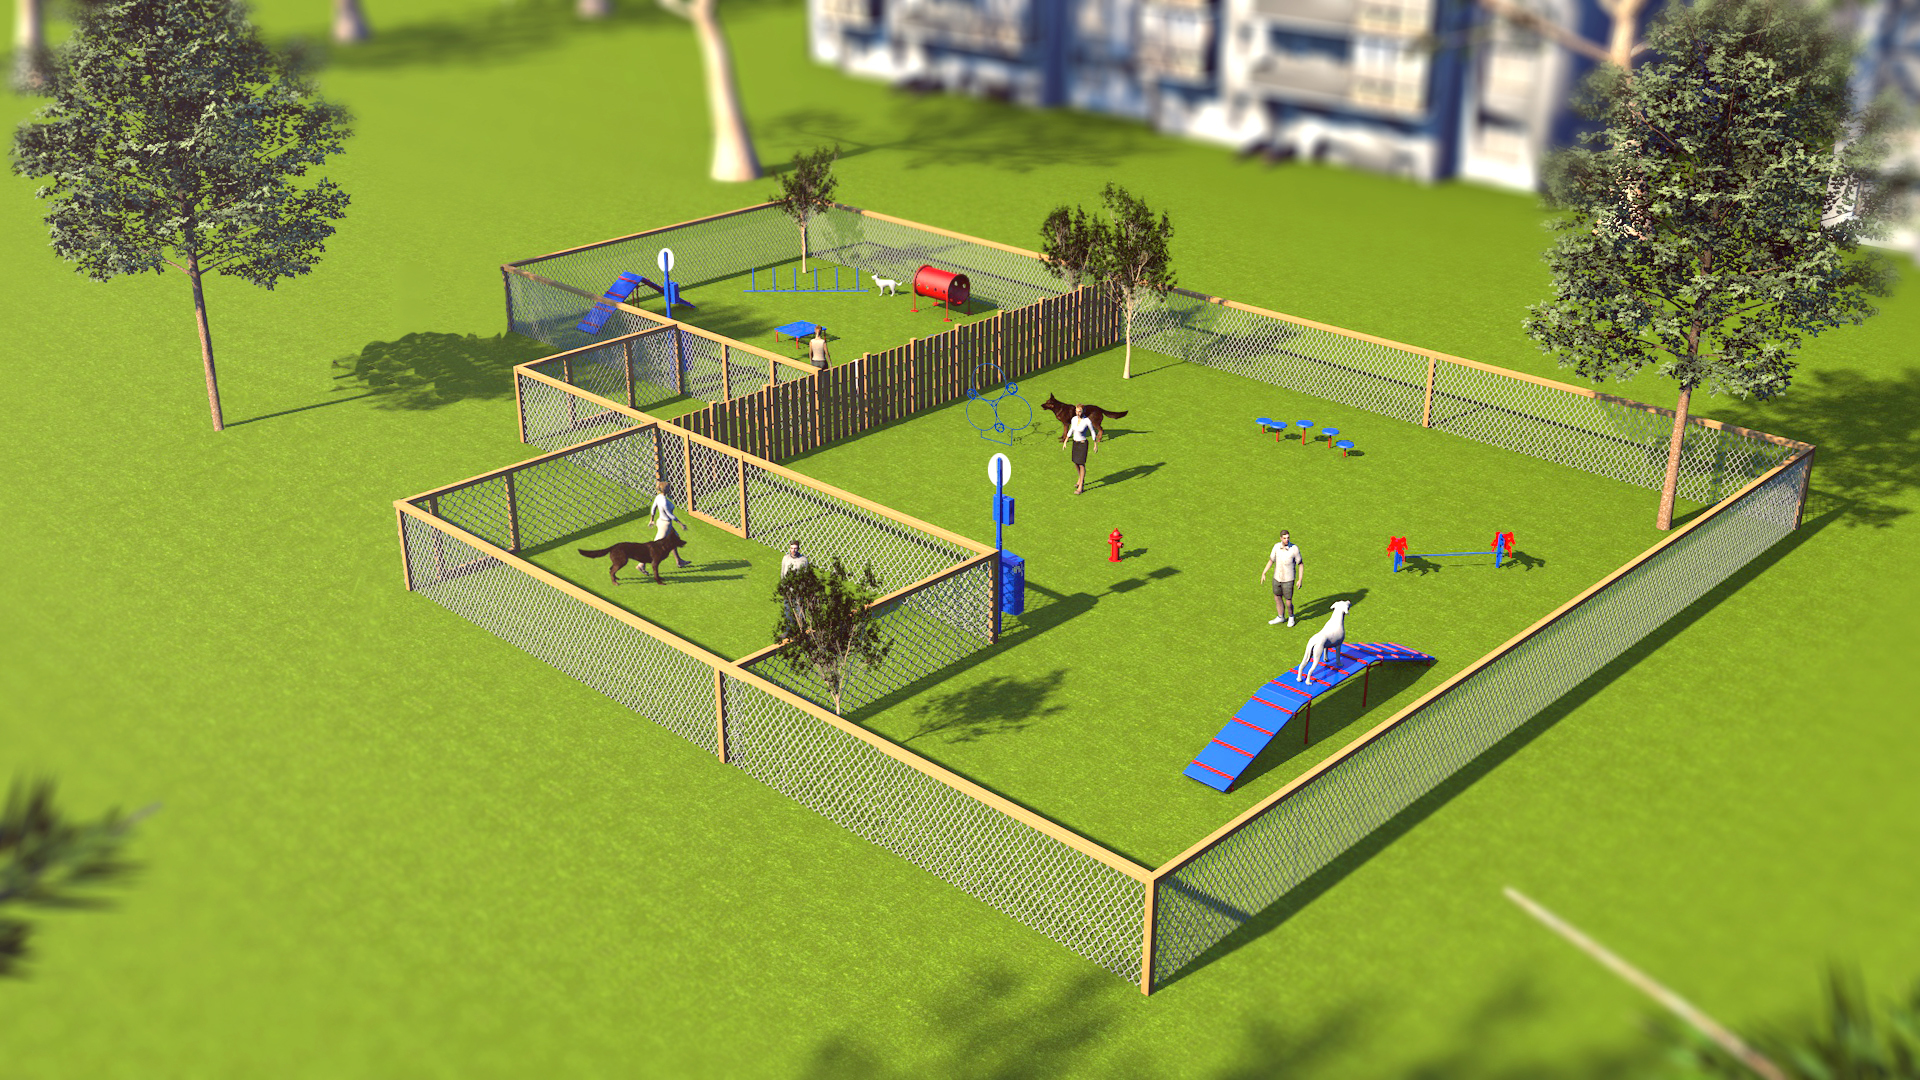 Overall image of BarkPark's Combination Course